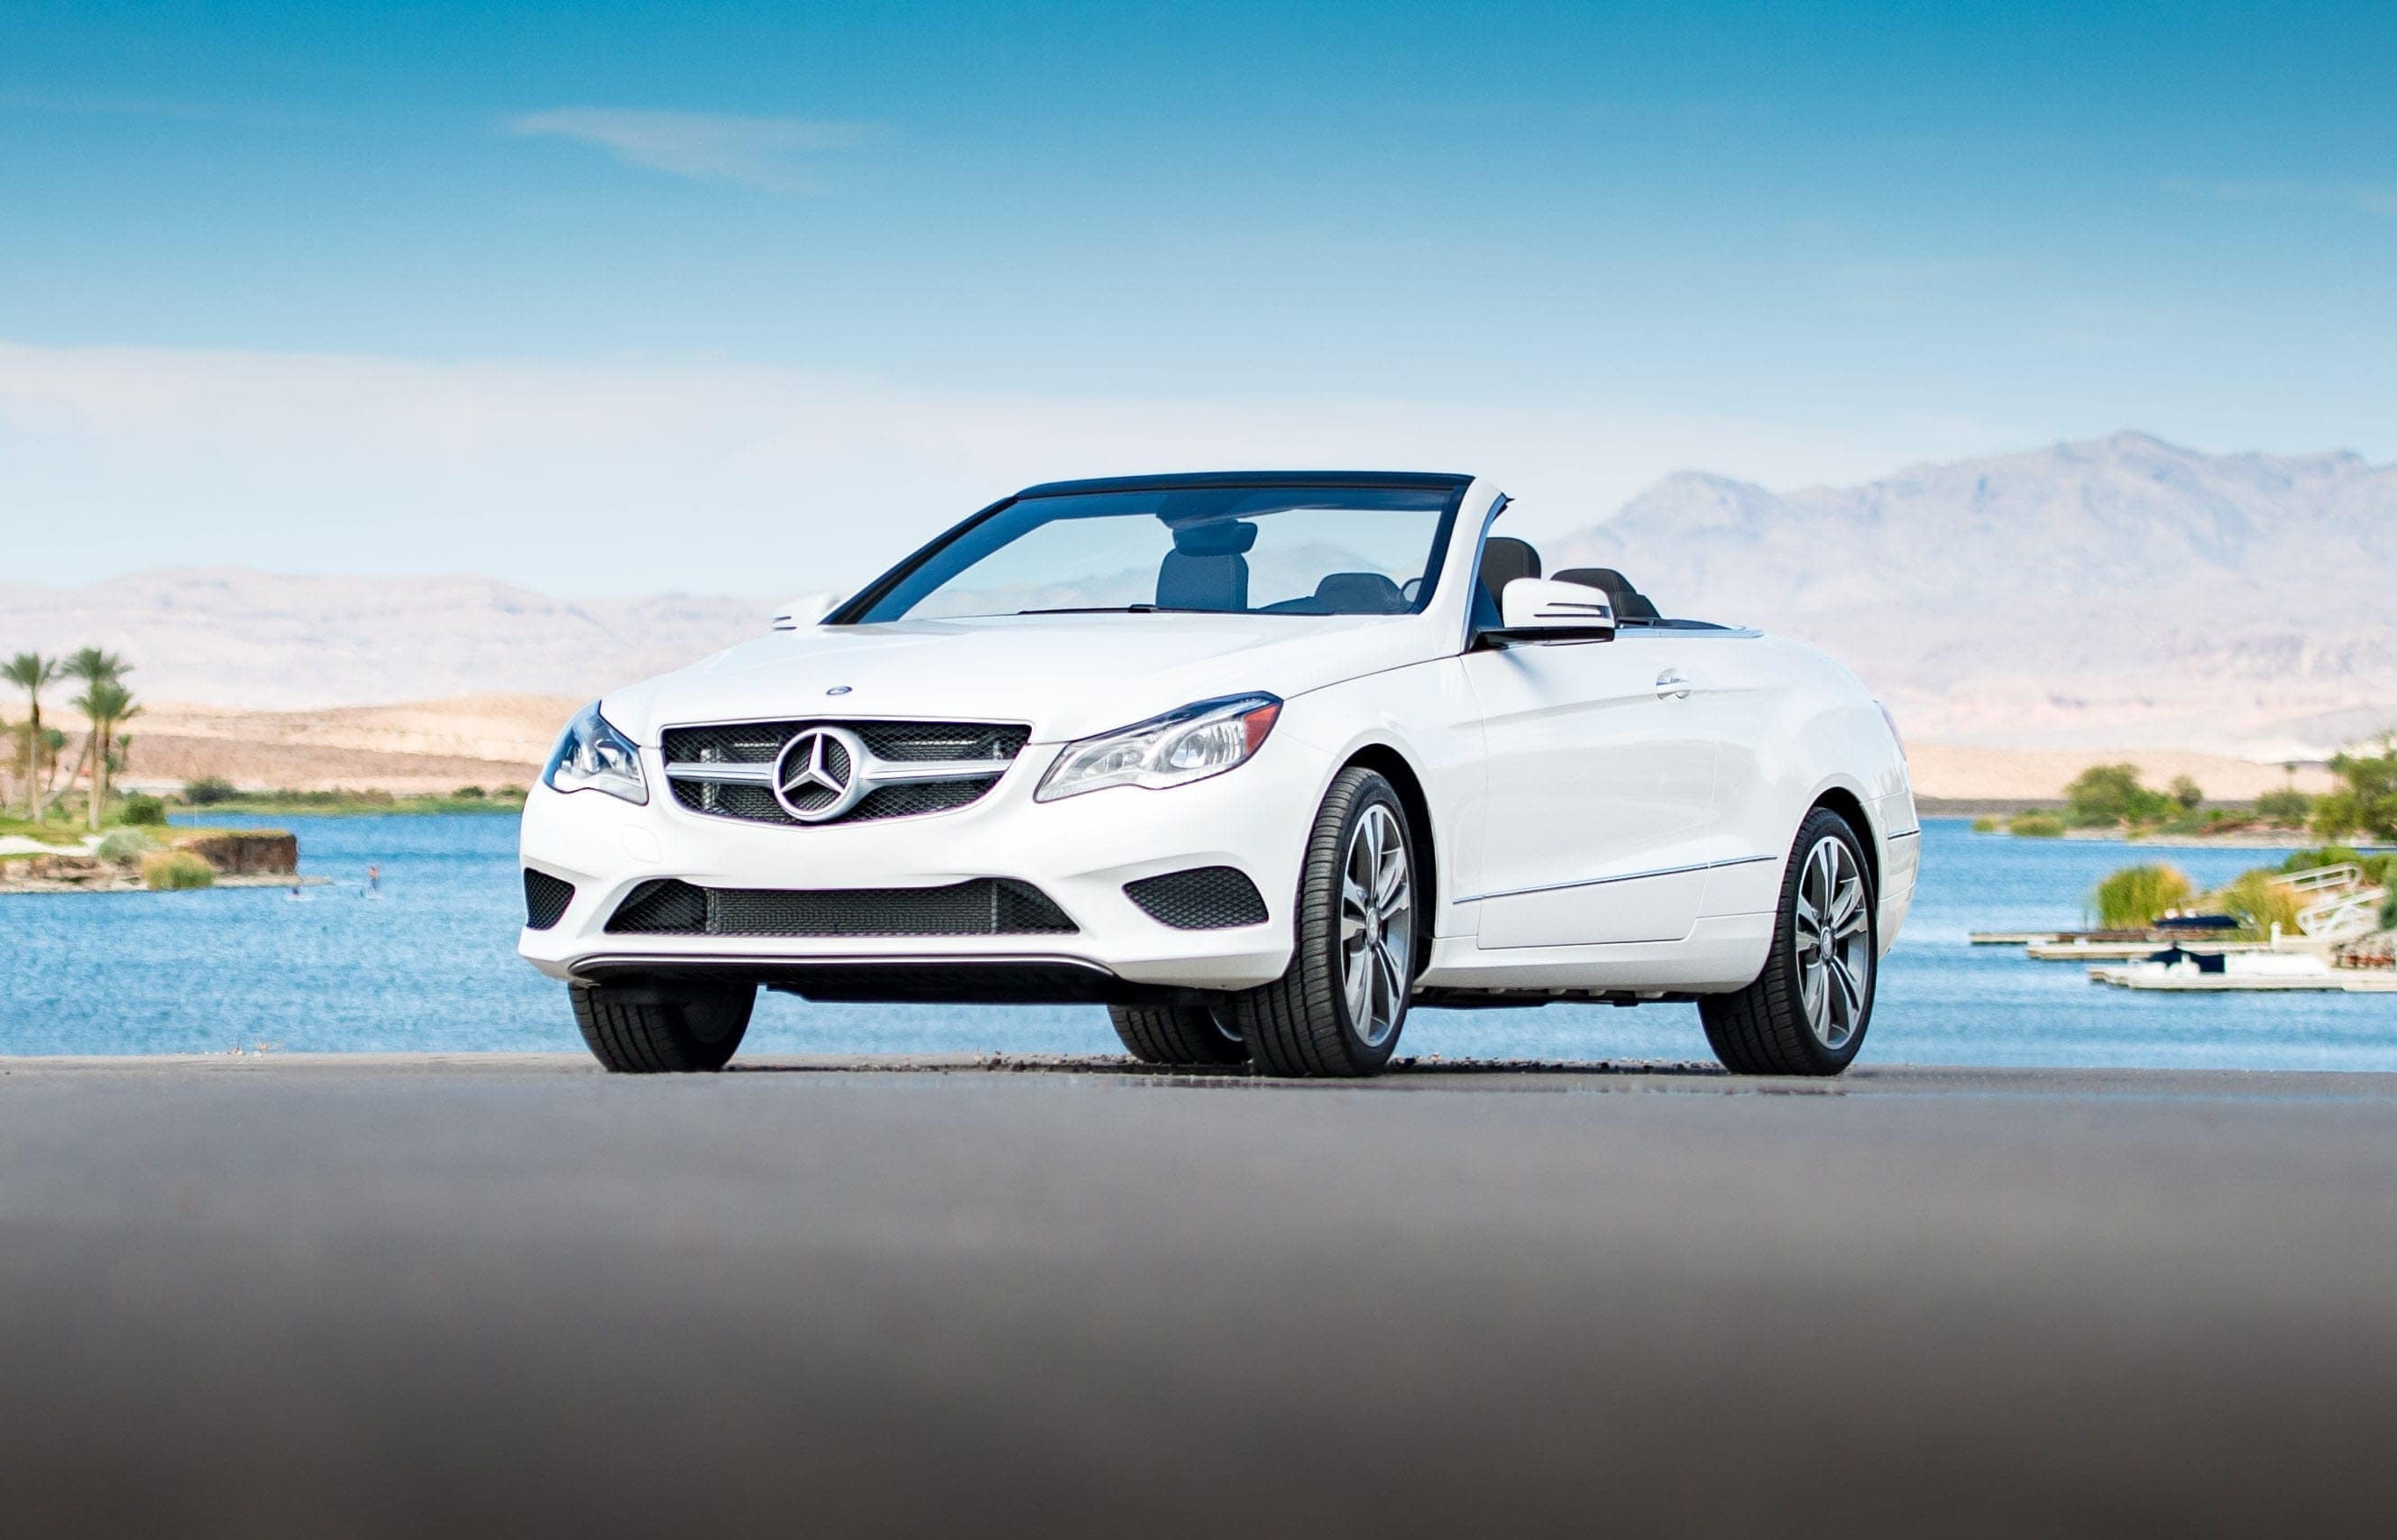 img forums month vehicles amg min deals mercedes package takeover per lease coupe benz